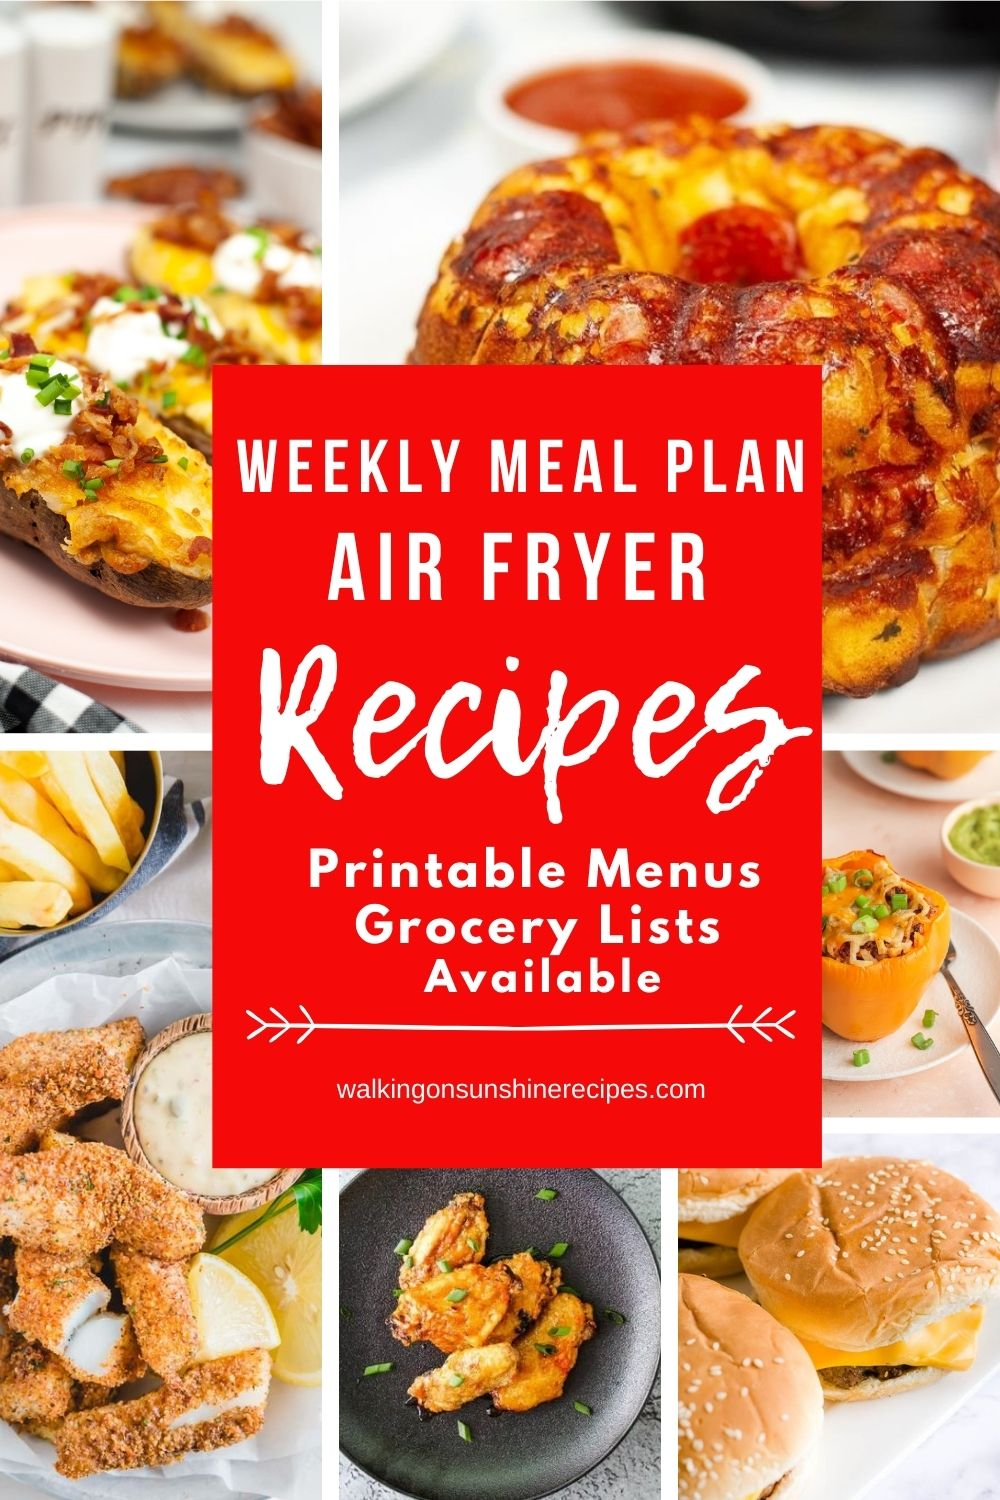 7 Air fryer recipes for a weekly meal plan.